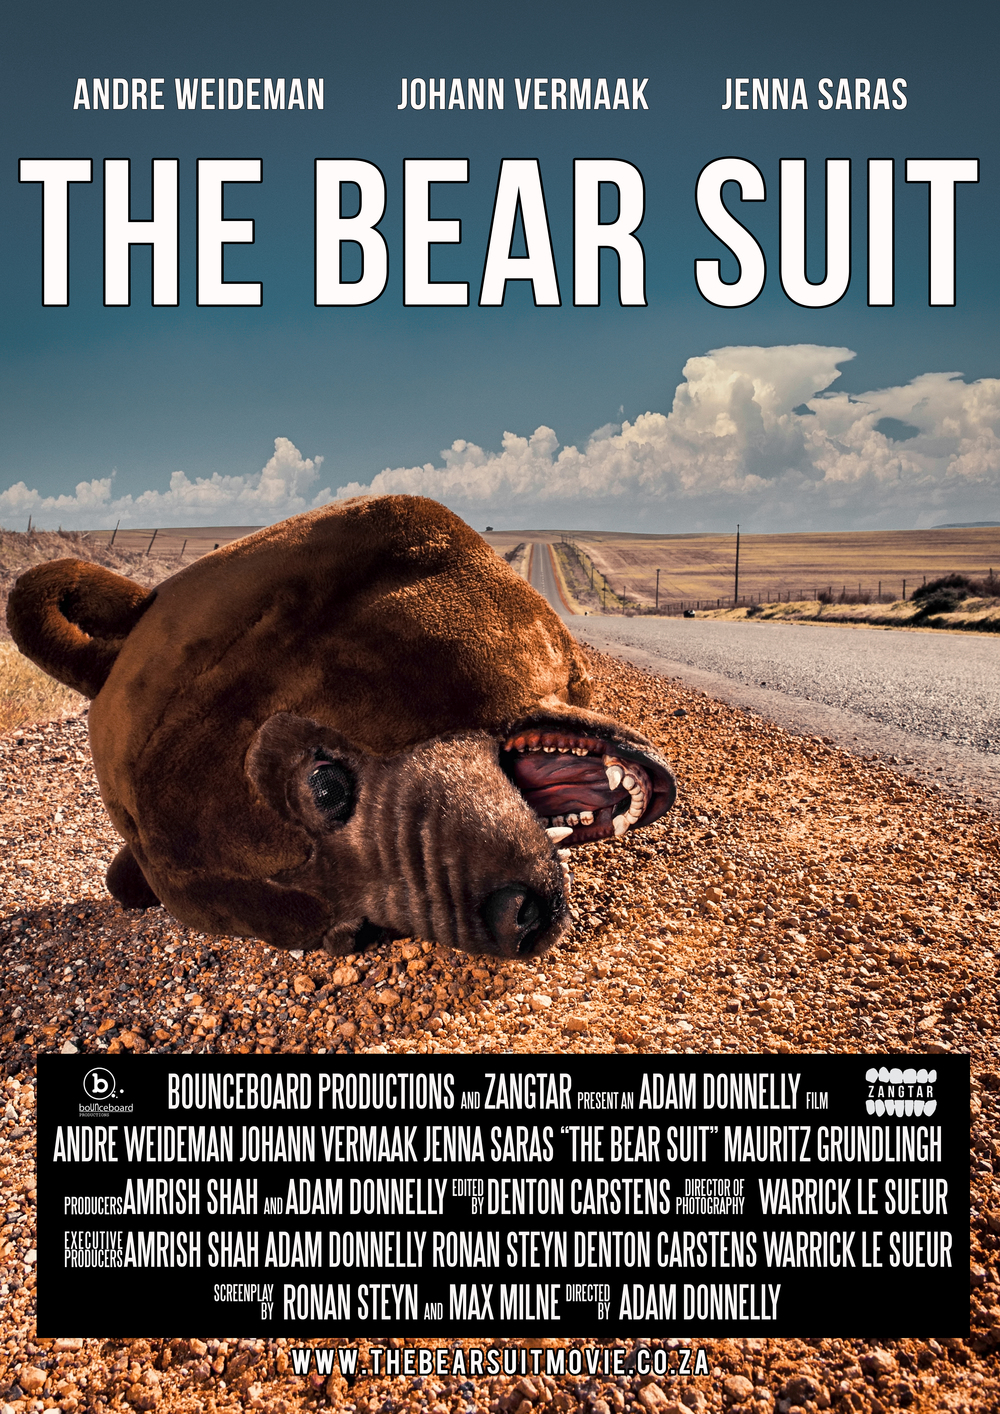 Adam - Donnelly -The Bear Suit - Production Stills 02 The Bear Suit Poster.jpg